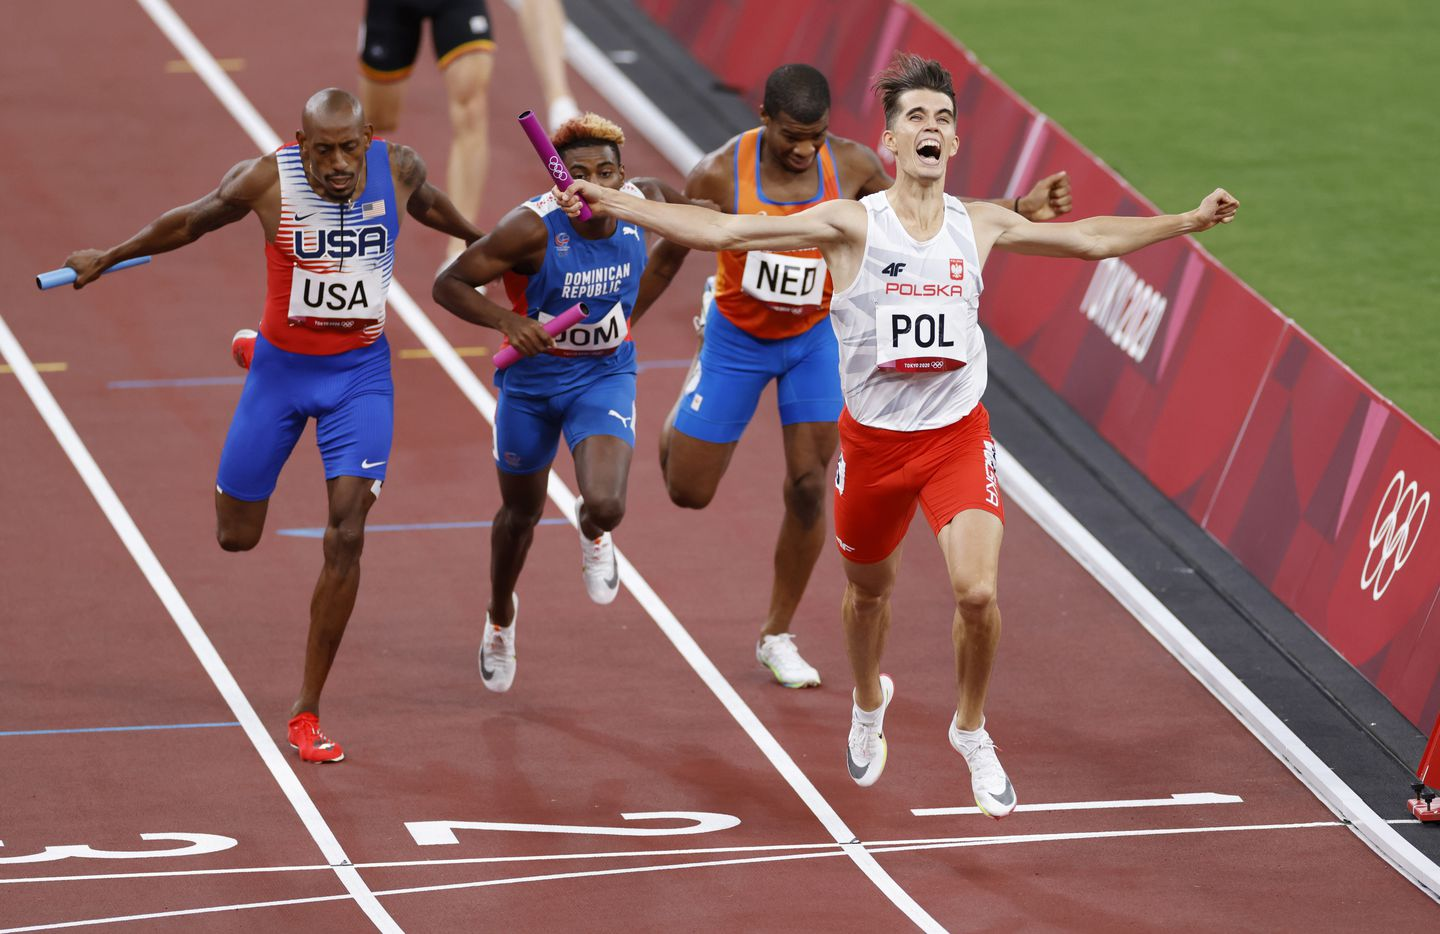 (From l to r) Poland's Kajetan Duszynski celebrates after winning and setting an Olympic record in the mixed 4x400m relay final during the postponed 2020 Tokyo Olympics at Olympic Stadium, on Saturday, July 31, 2021, in Tokyo, Japan. Poland earned a gold medal, the Dominican Republic a silver and USA took bronze. (Vernon Bryant/The Dallas Morning News)